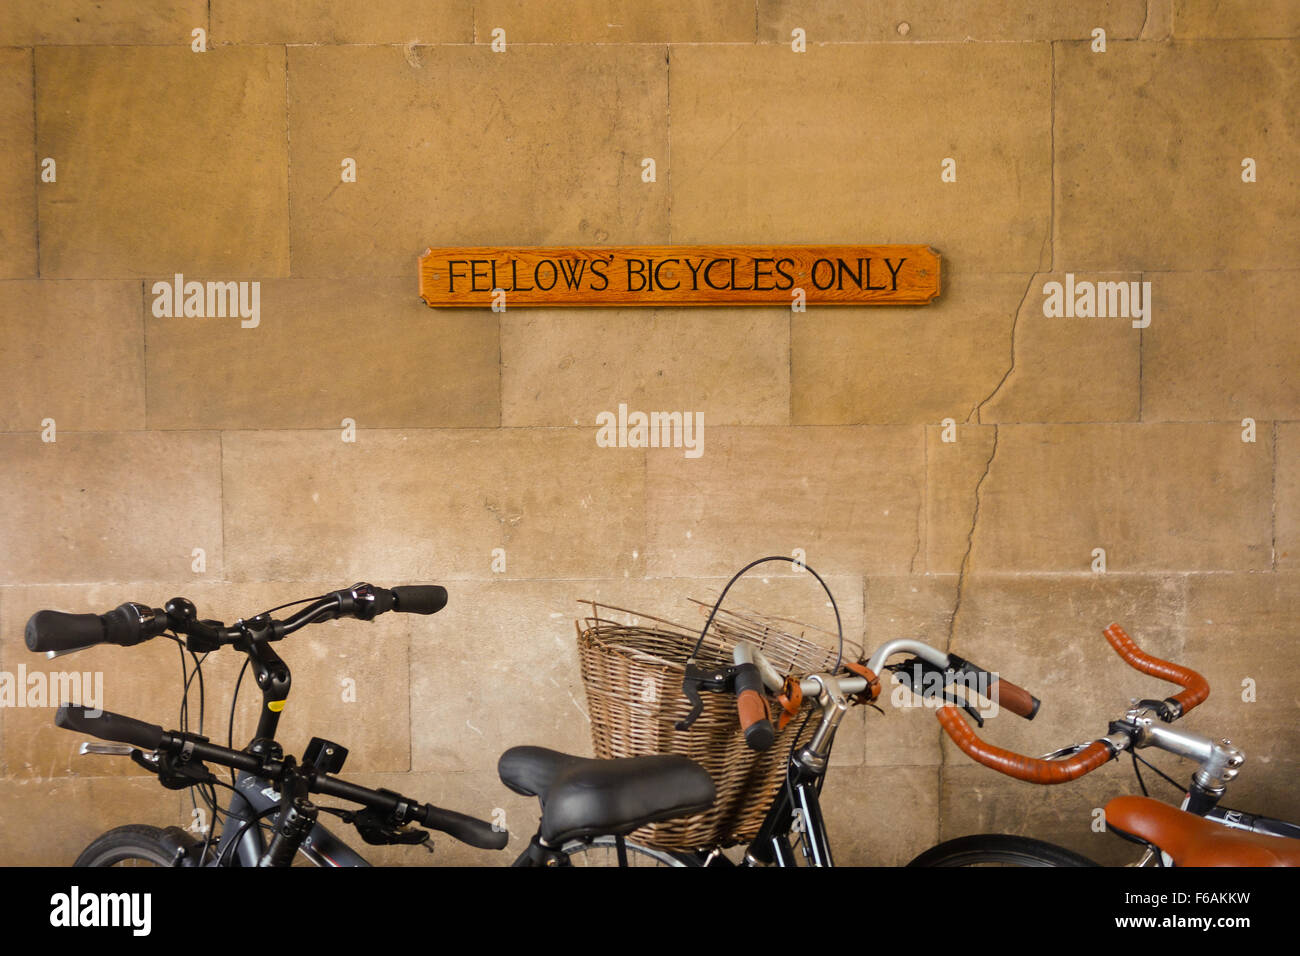 'Fellows' Bicycles Only' sign at Corpus Christi Collage, Cambridge University, England - Stock Image